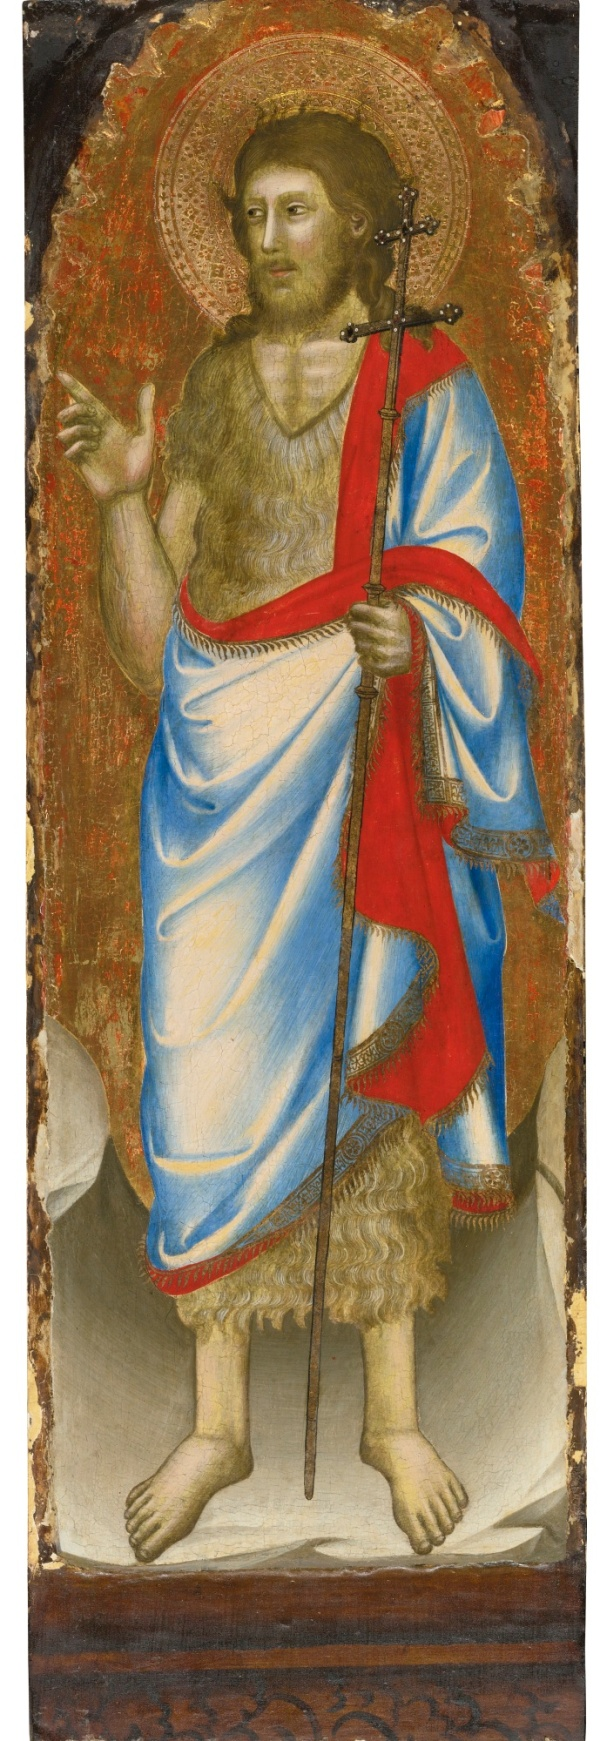 Lot 157. PUCCIO DI SIMONE ACTIVE IN FLORENCE CIRCA 1345-1365 SAINT JAMES THE LESSER; SAINT JOHN THE BAPTIST one of a pair, both tempera on panel, gold ground each: 99.7 by 34.6 cm.; 39 1/4  by 13 5/8  in. Estimate: 100,000-150,000.